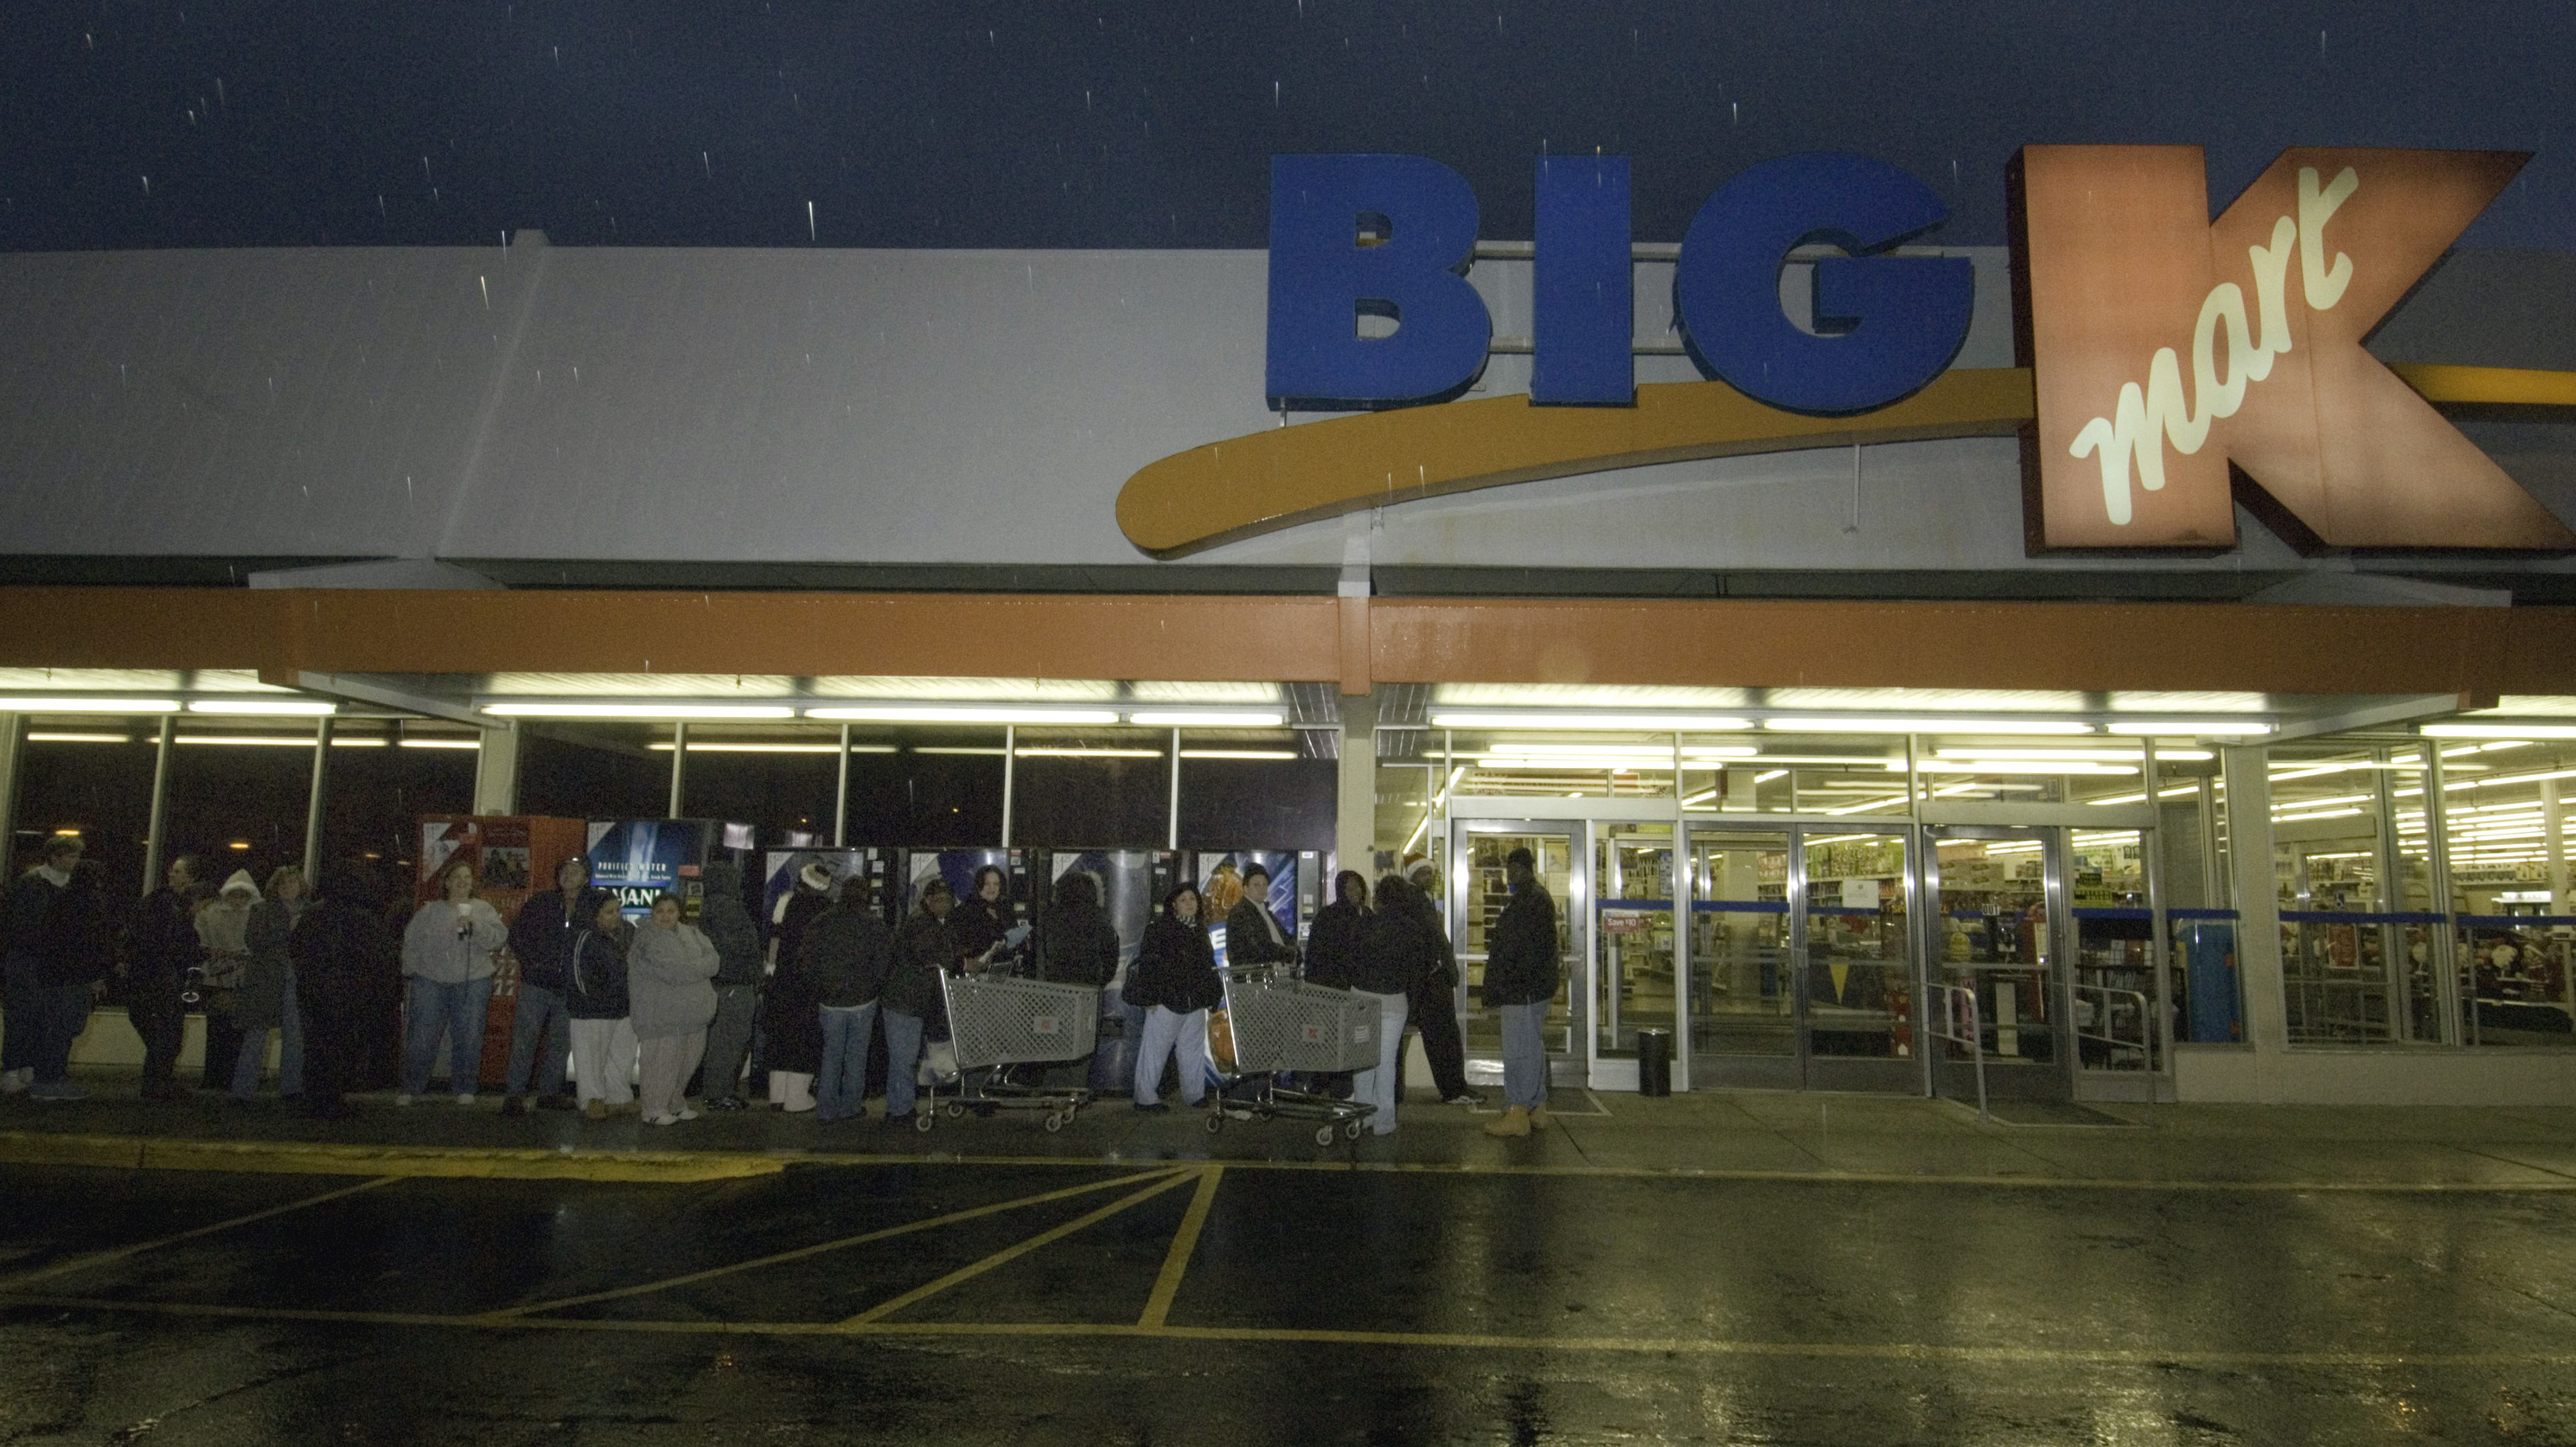 Kmart Careers 41 Hours Of Retail Kmart S Black Friday Plan Is Criticized The